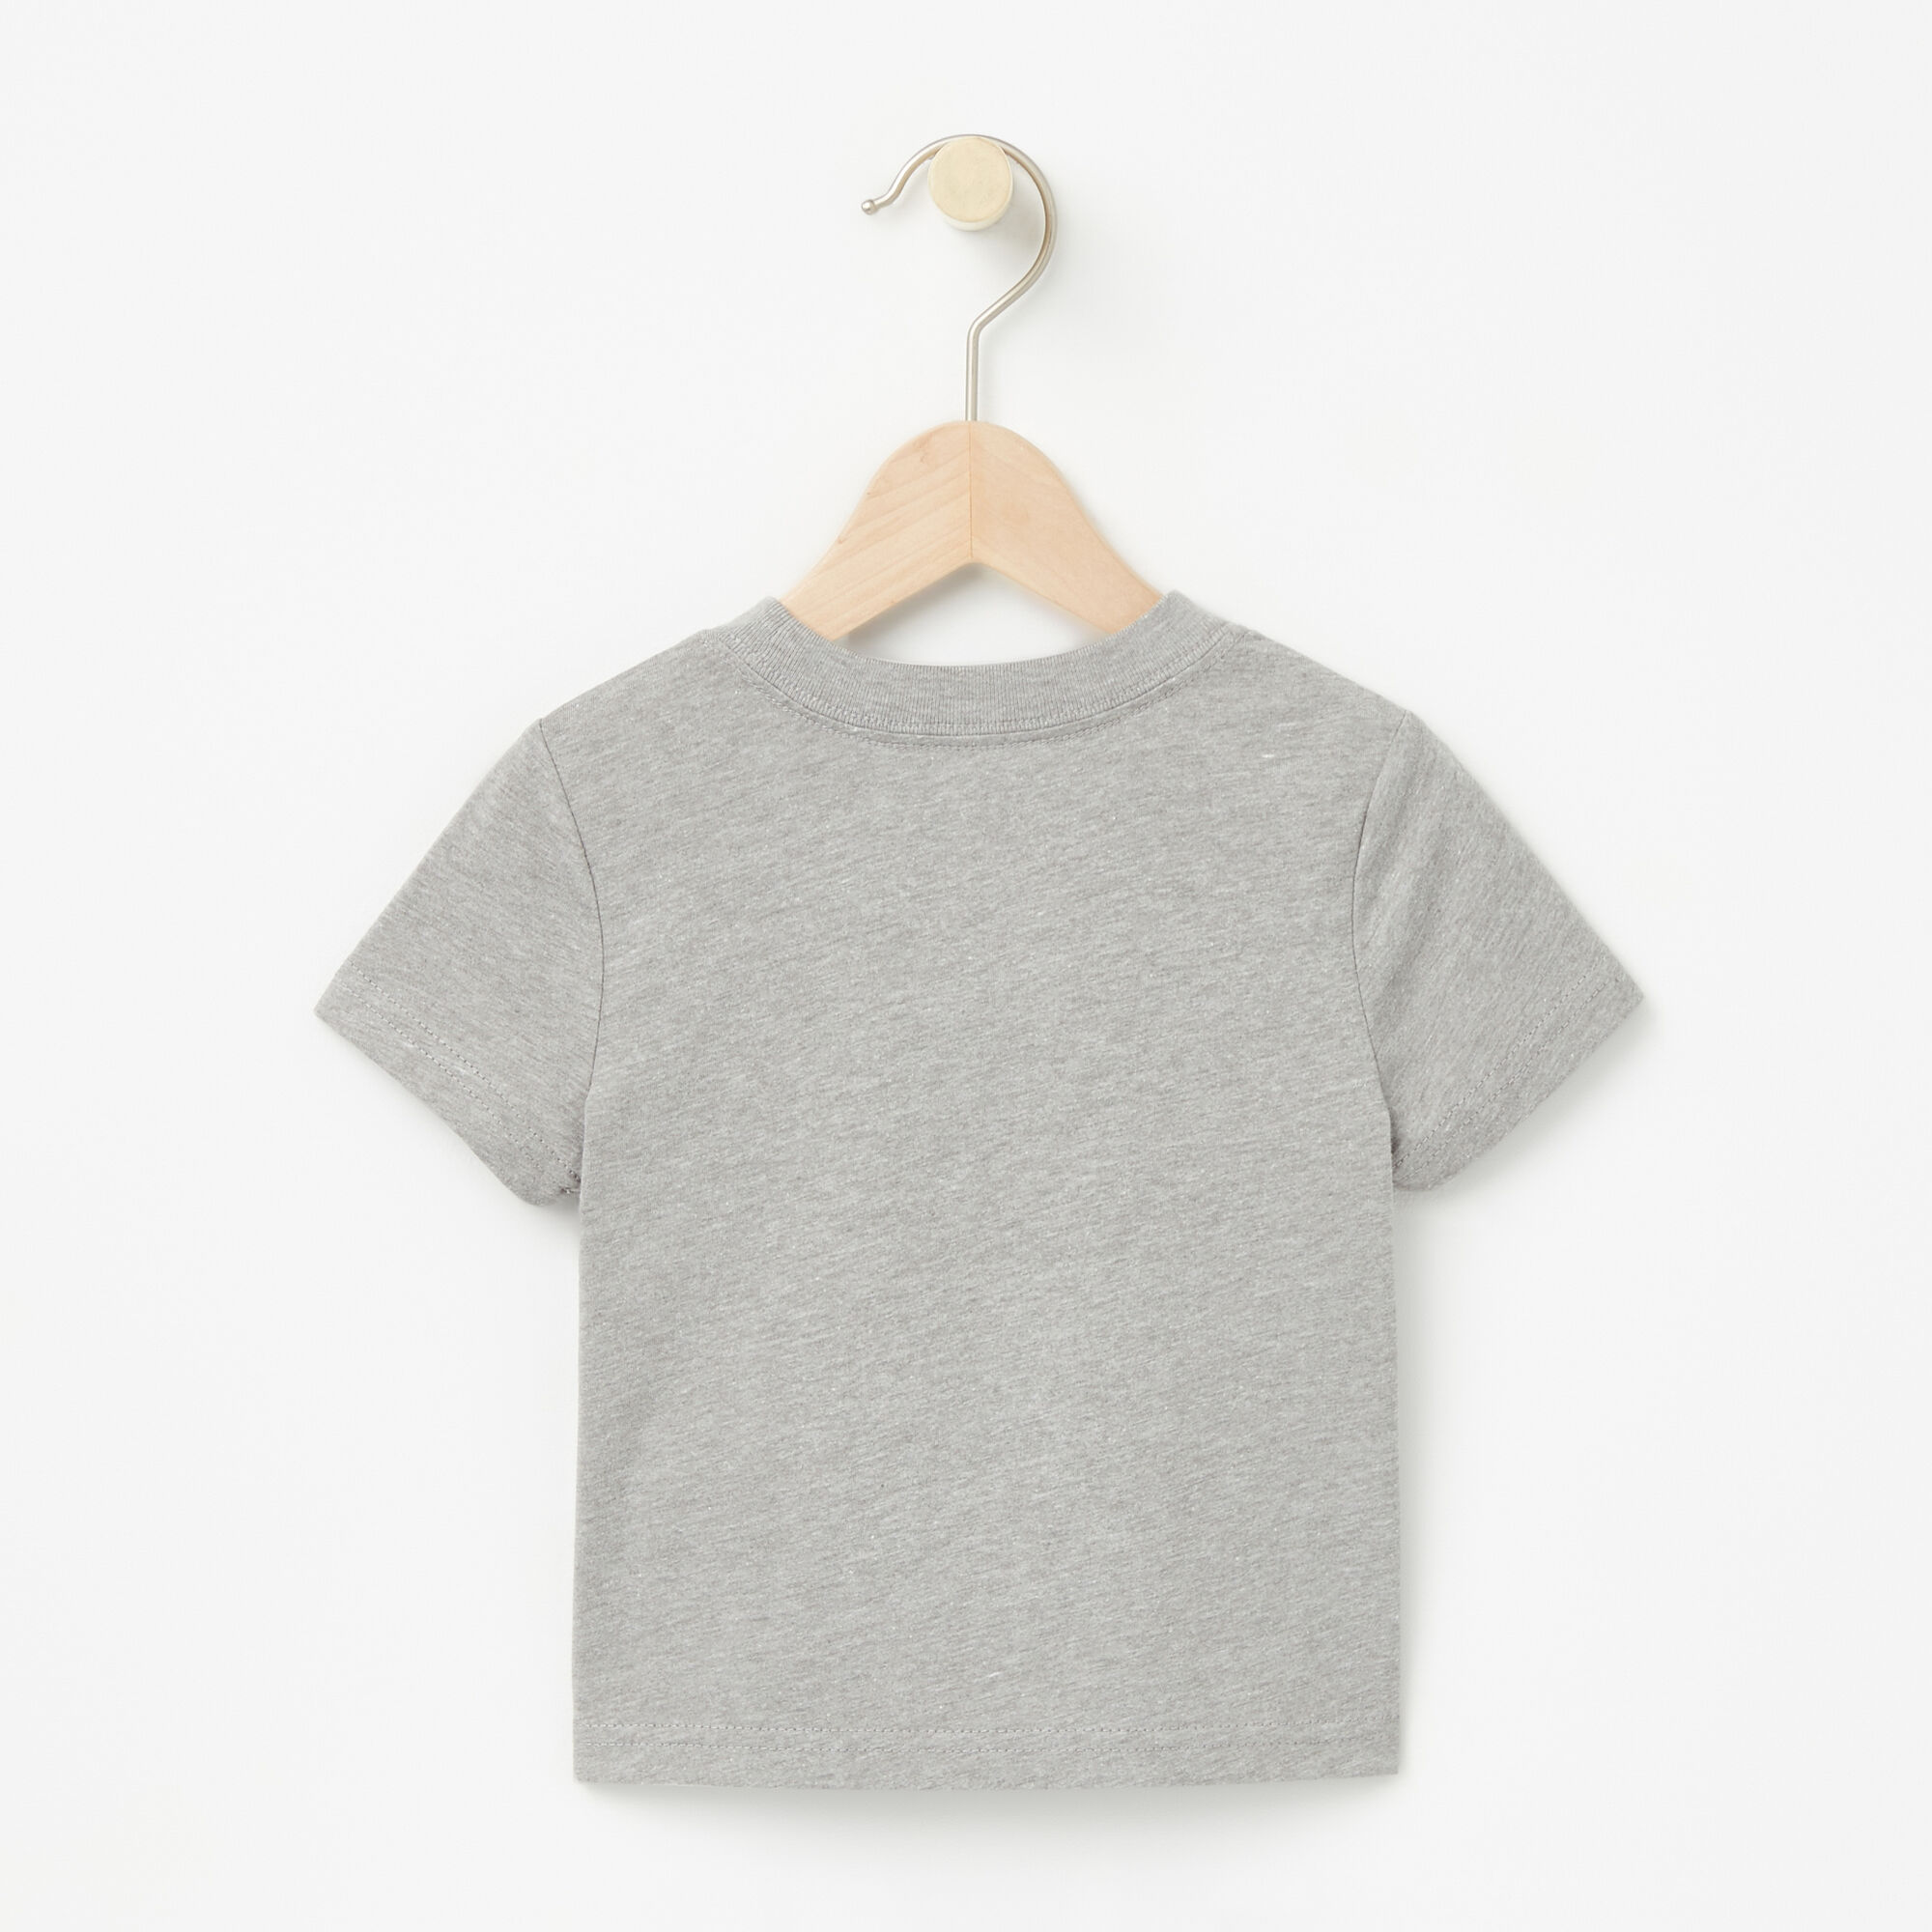 Baby Roots Canada Leaf T-shirt